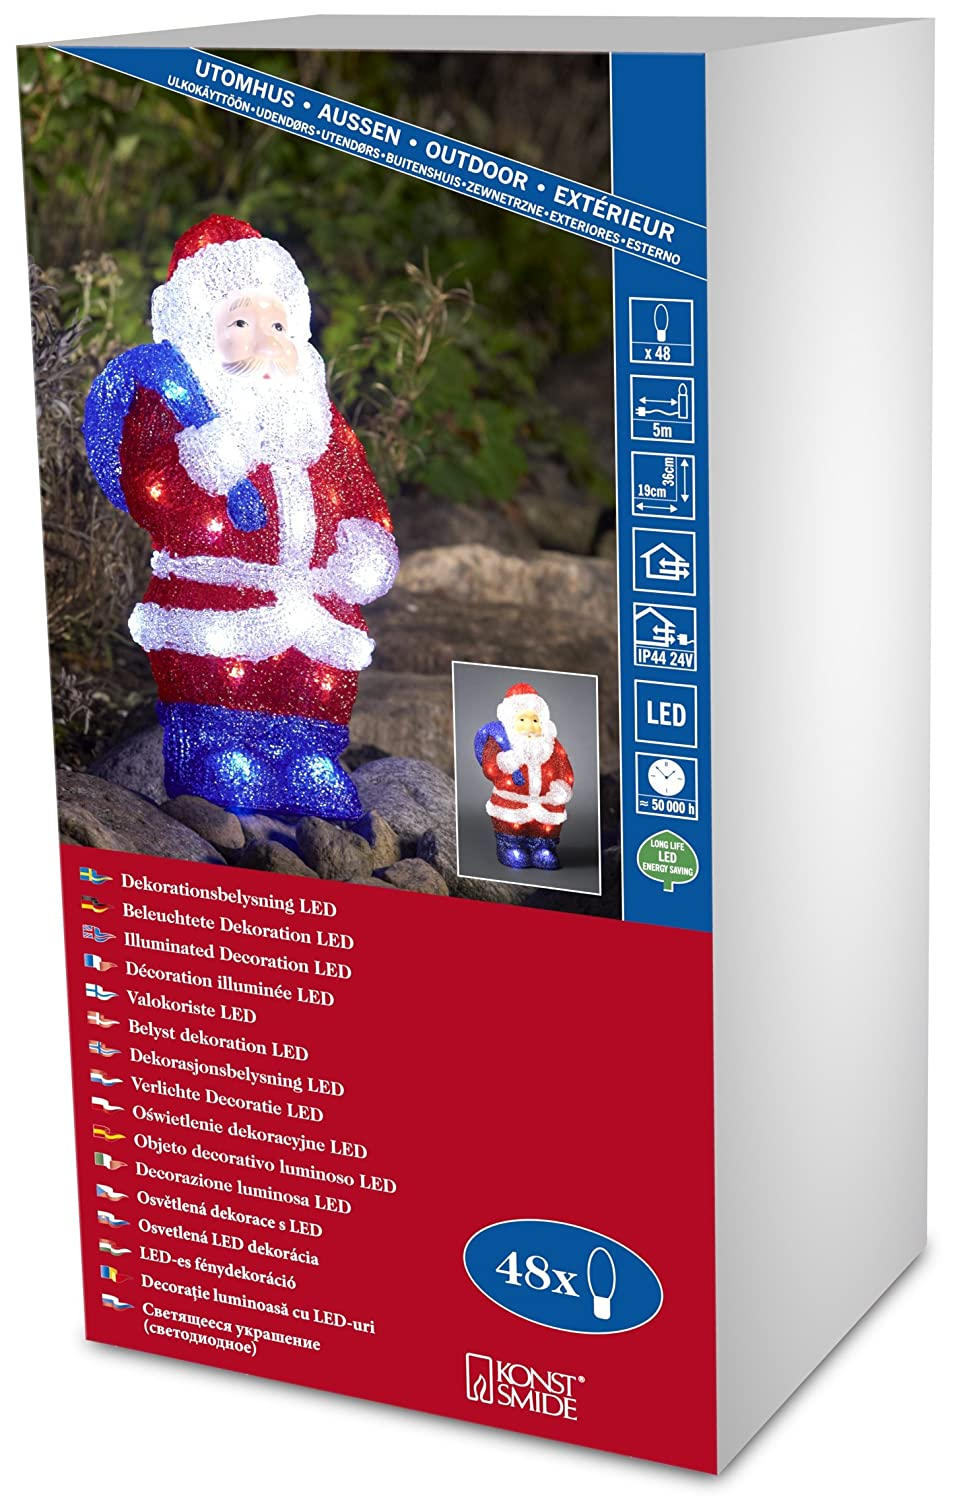 Konstsmide 6153 203 Led Acrylic Decoration Small Standing Santa Outdoor Ip44 48 Ice White Leds Transparent Cable